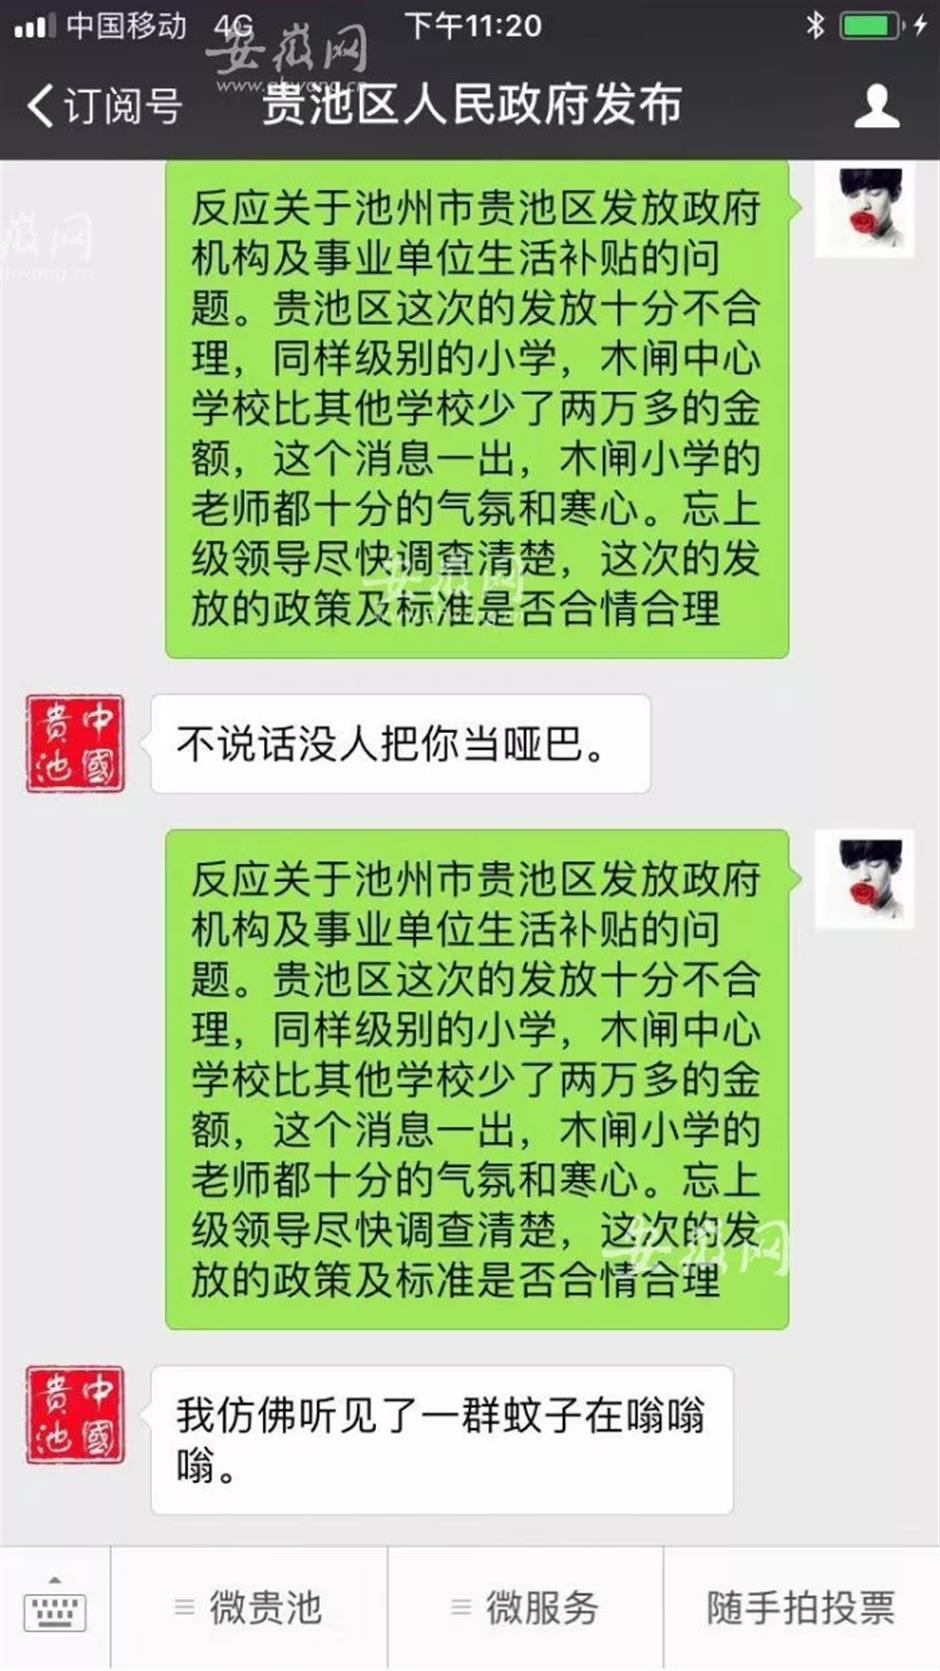 'Improper' replies from official government WeChat account shock netizens